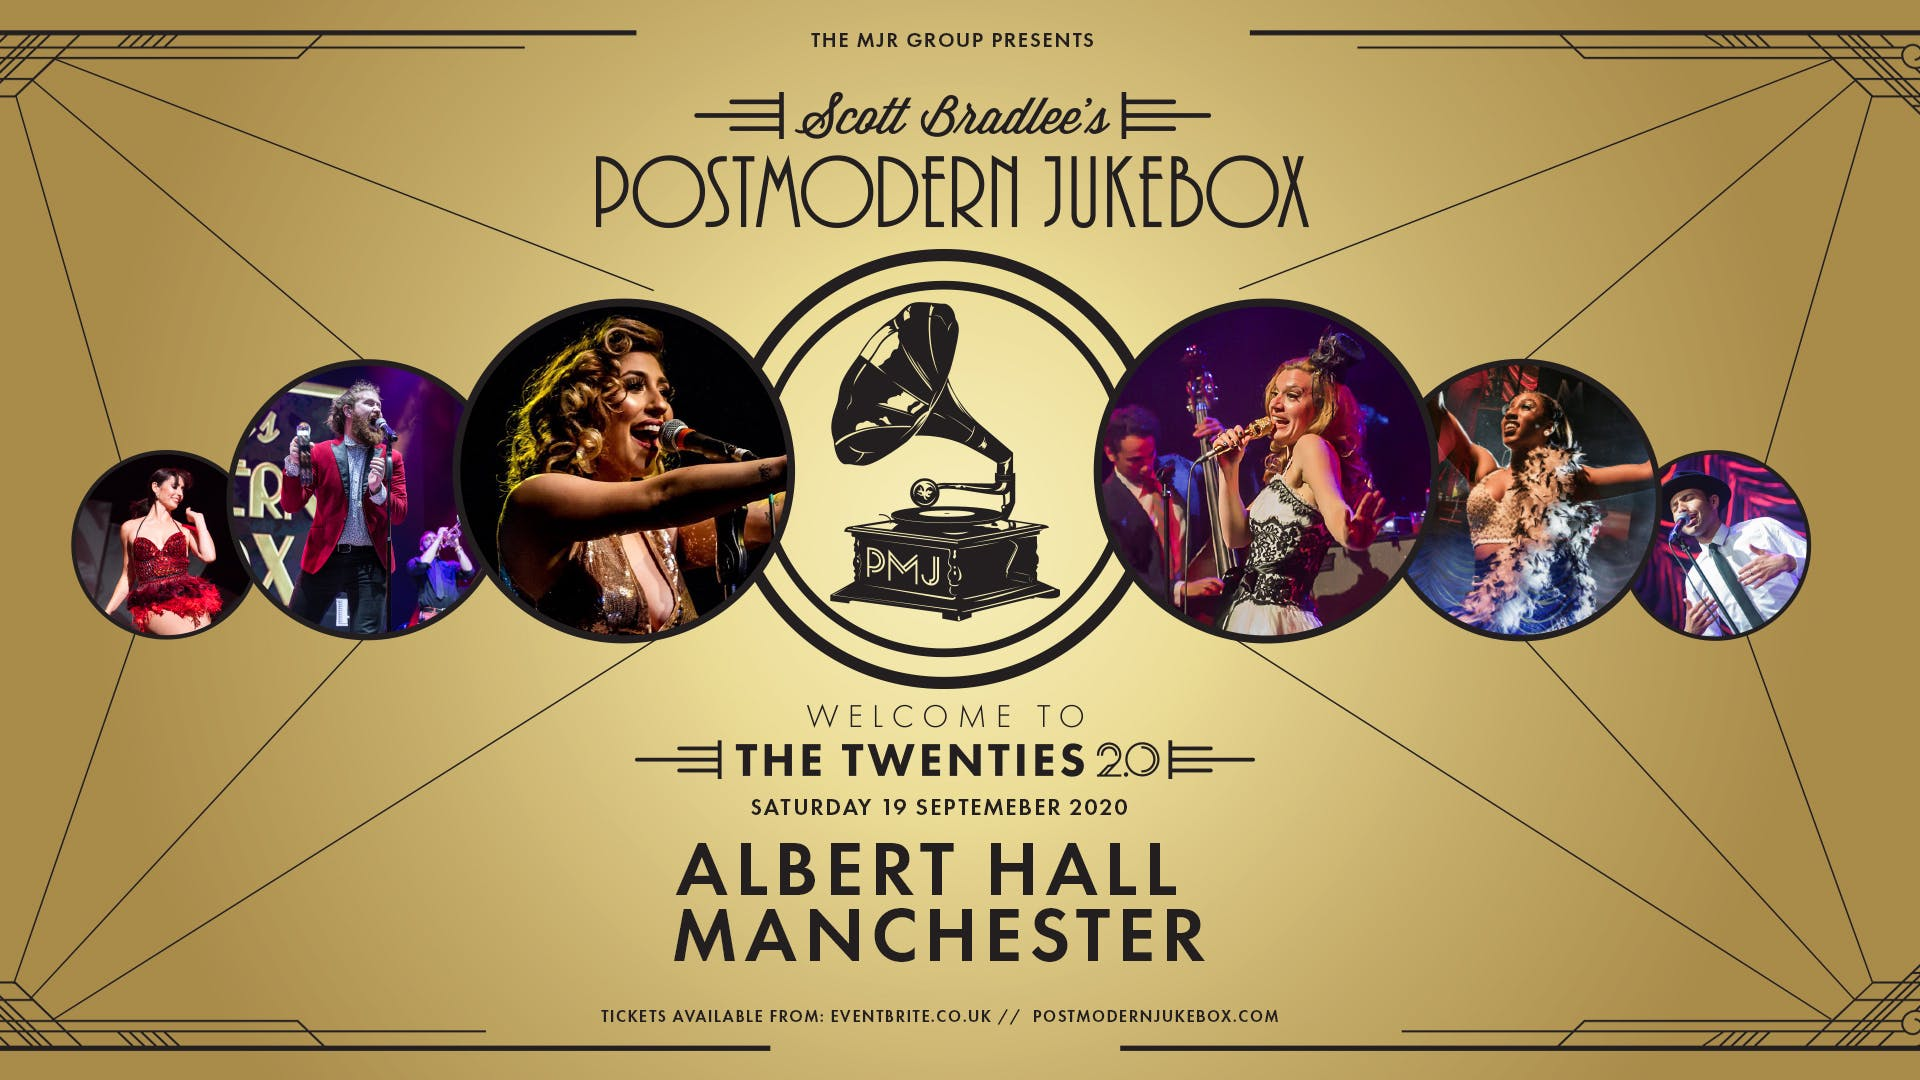 Scott Bradlees Postmodern Jukebox